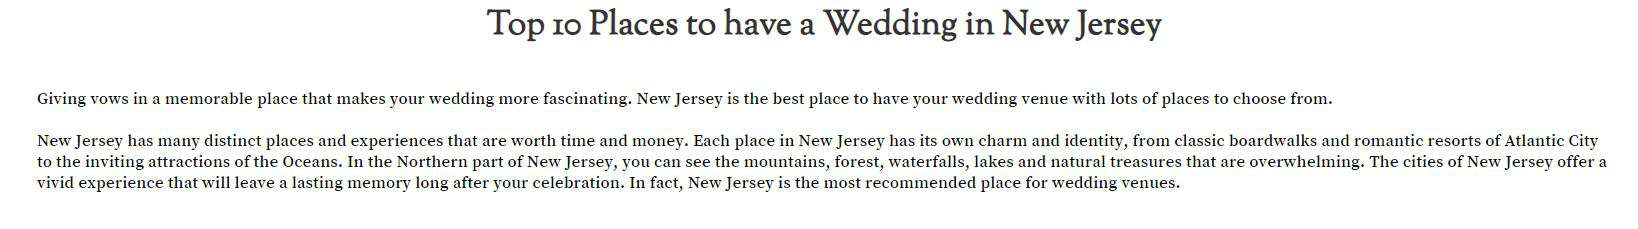 Top 10 Places to have a wedding in NJ